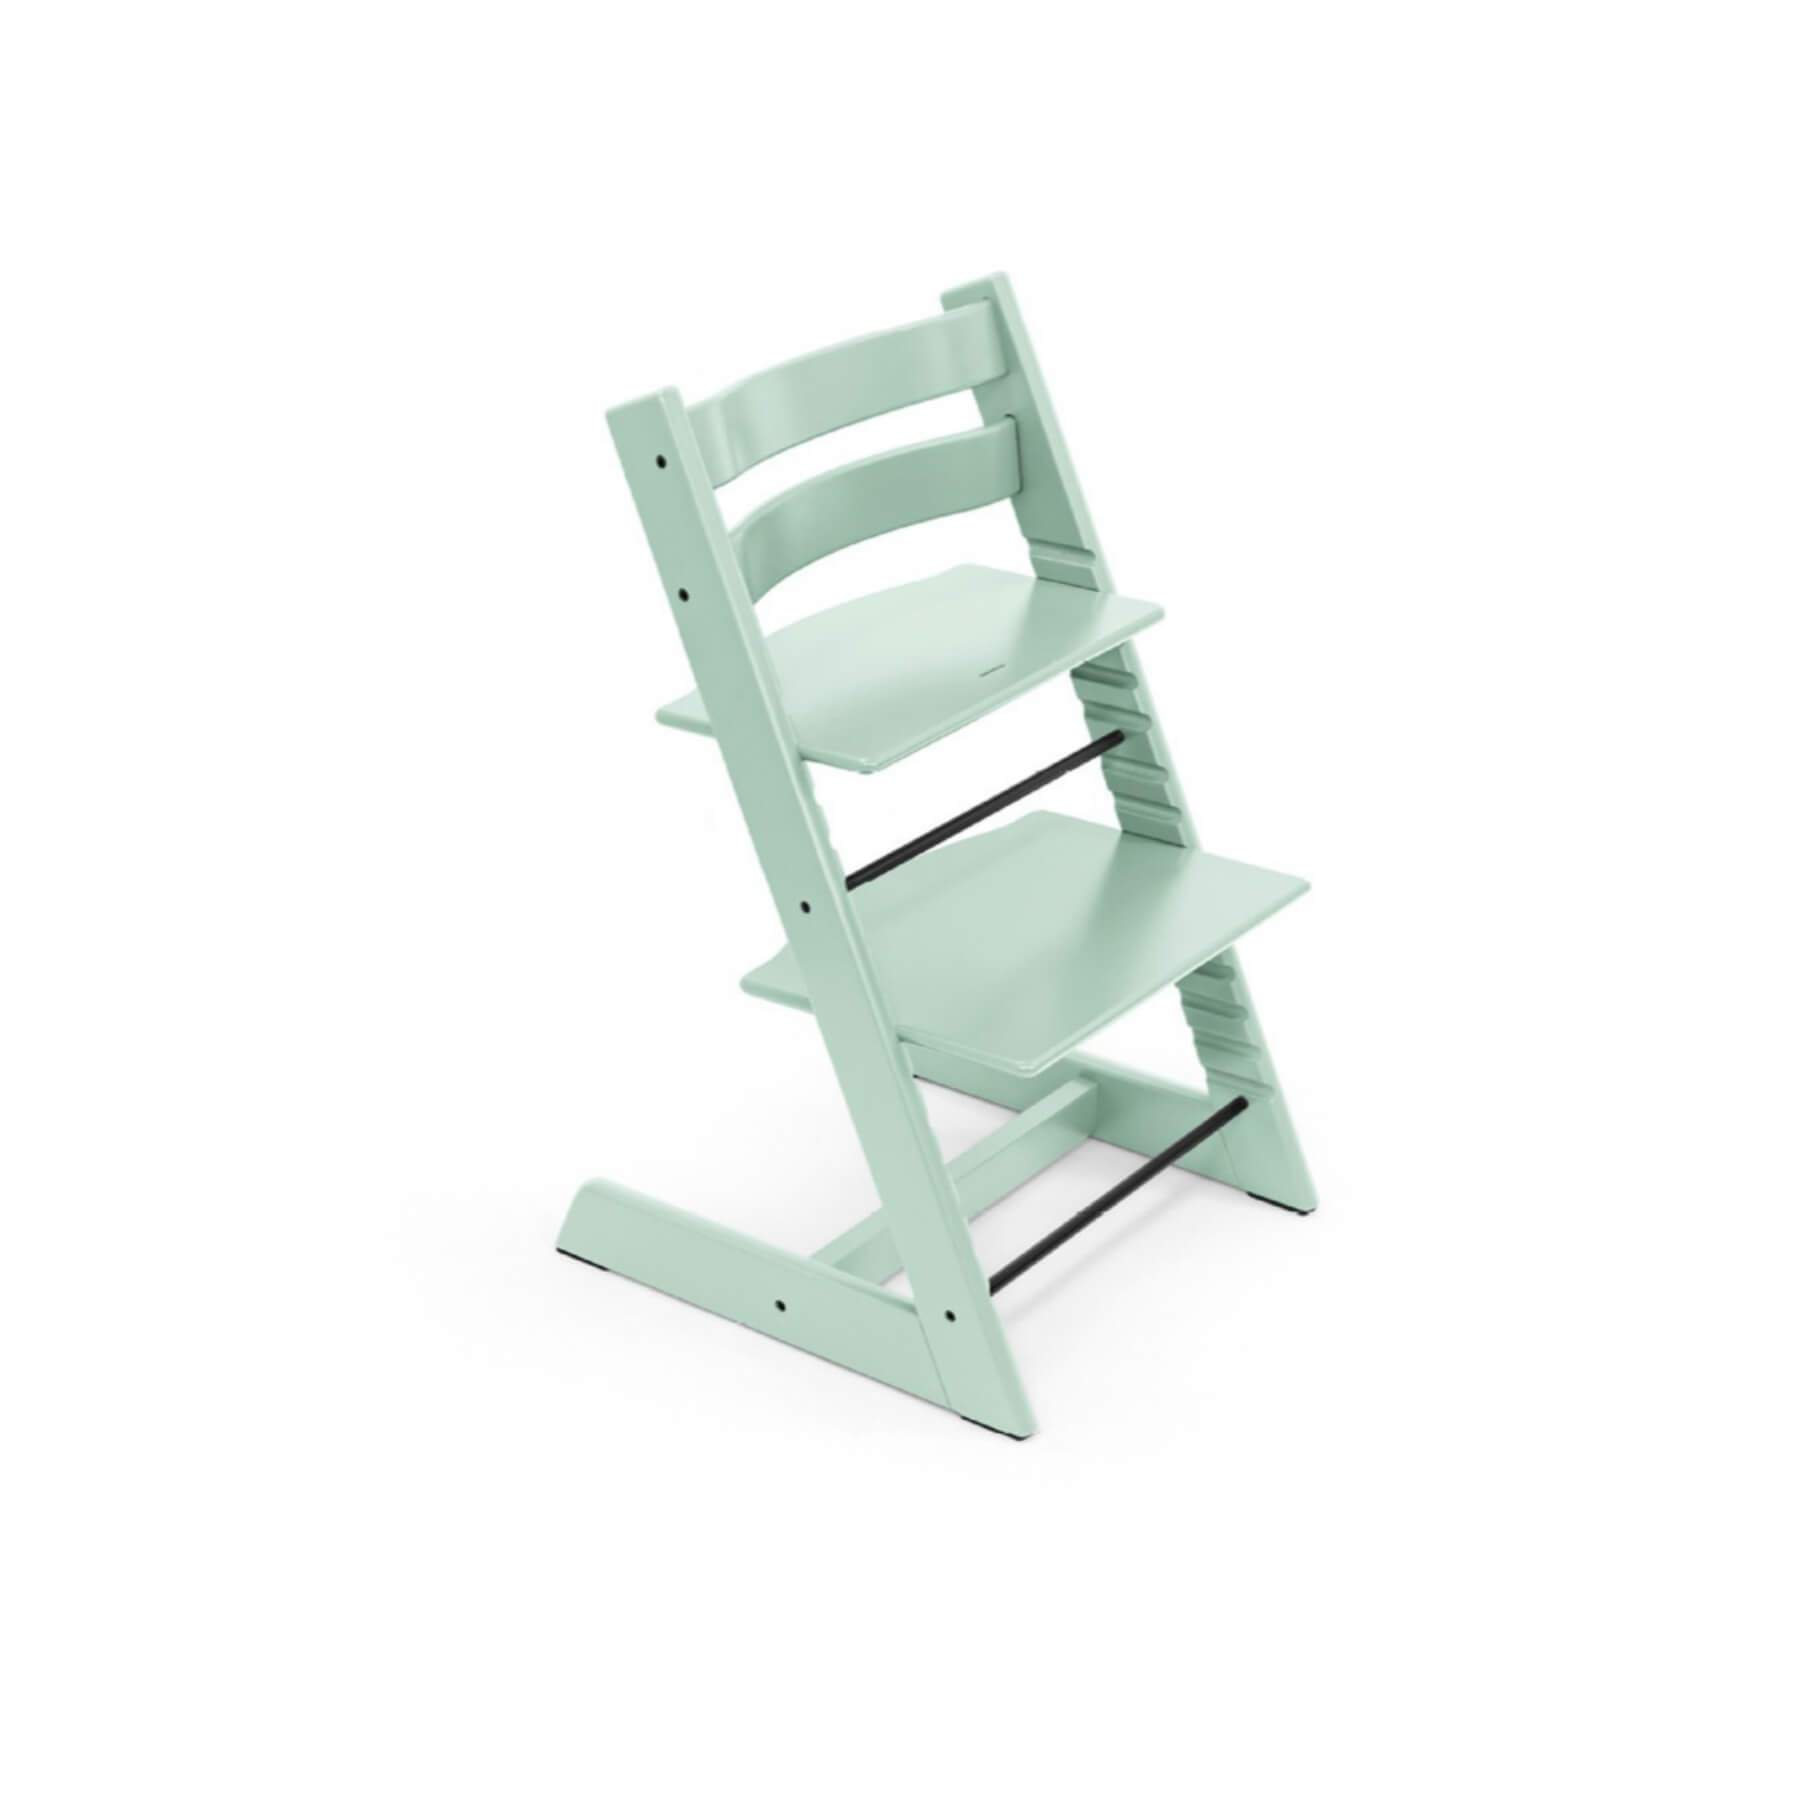 Stokke Tripp Trapp Chair - Soft Mint